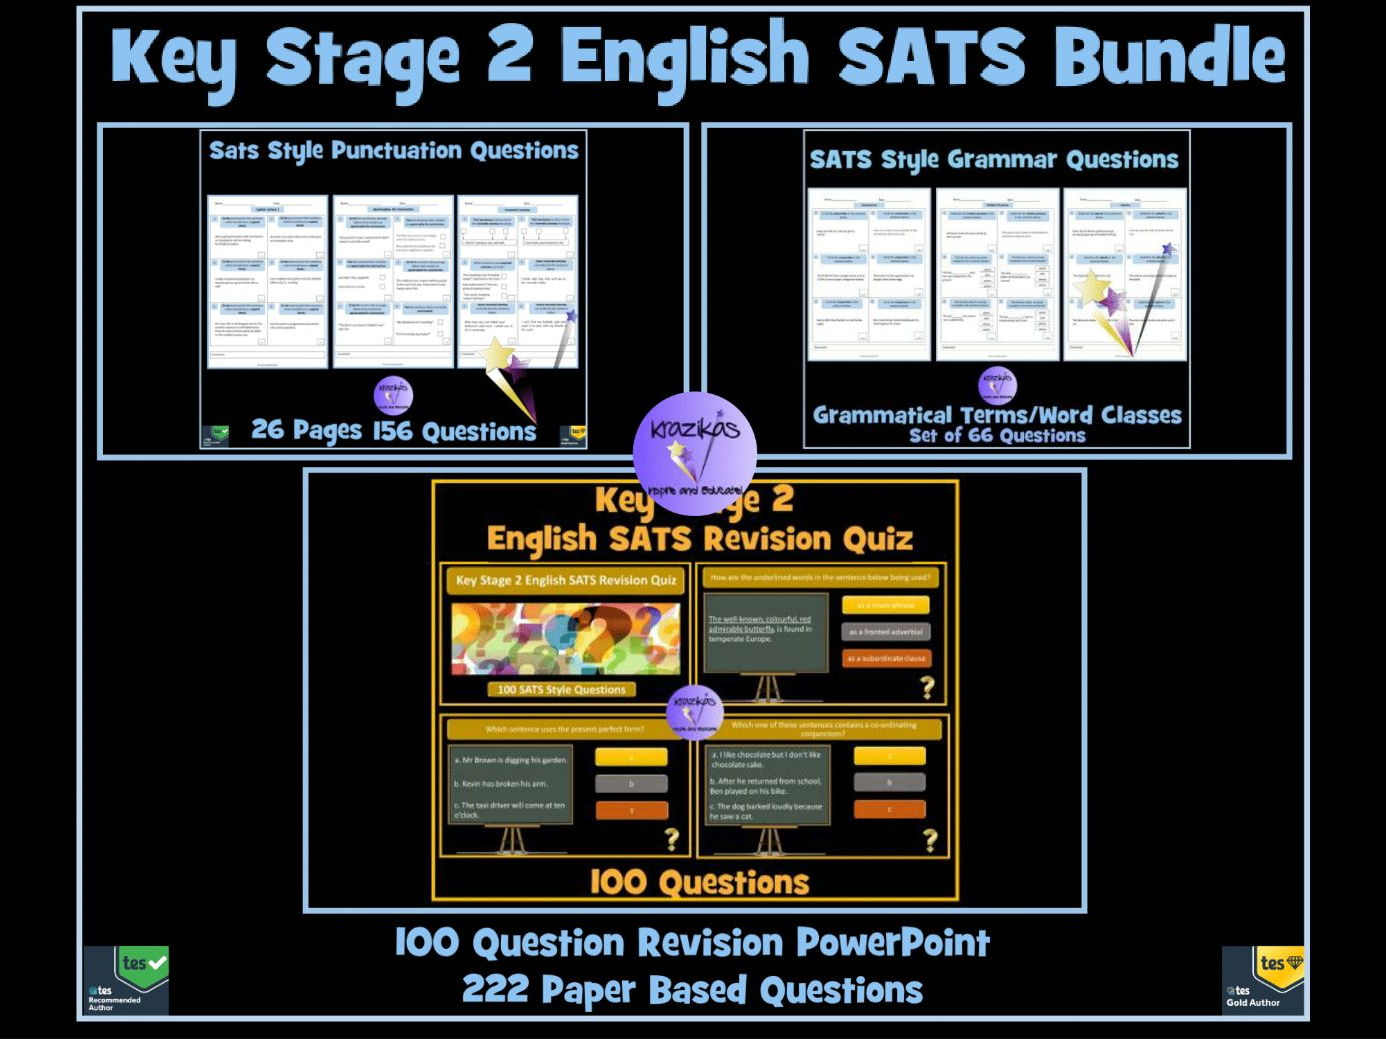 Key Stage 2 SATS English Bundle - 100 Question Revision PowerPoint and Set of  222 Grammar and Punctuation Questions